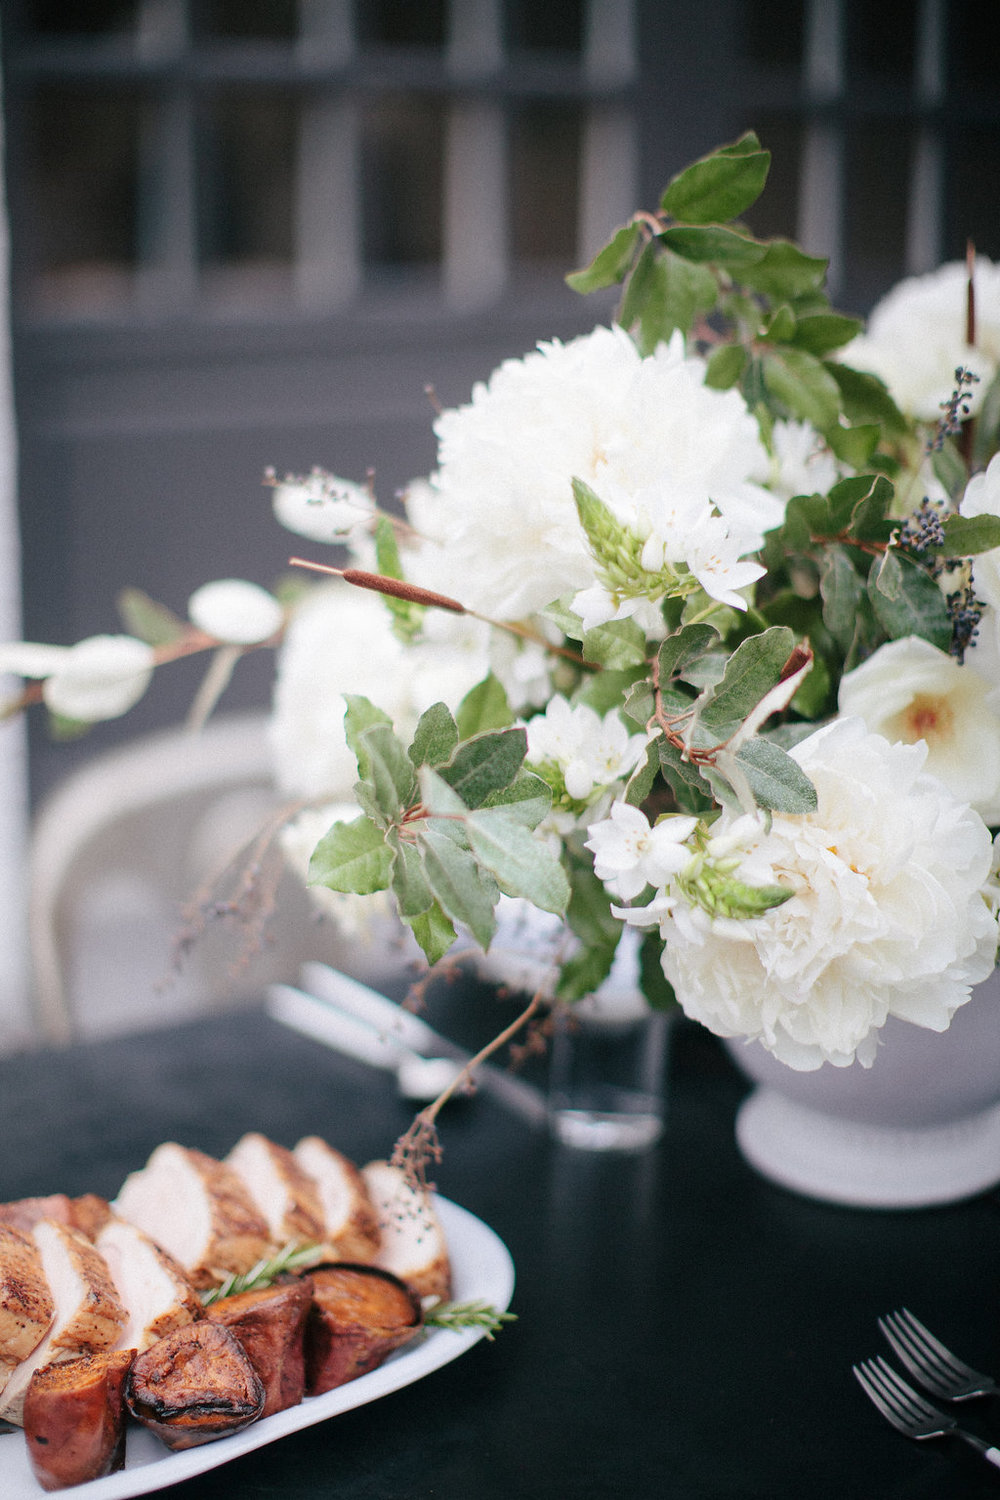 12th-Table-WEDDING-RENTALS-NASHVILLE-Design-Tips-Hosting-ENTERTAINING-Series-HowIHost-Flowers-Photograph #